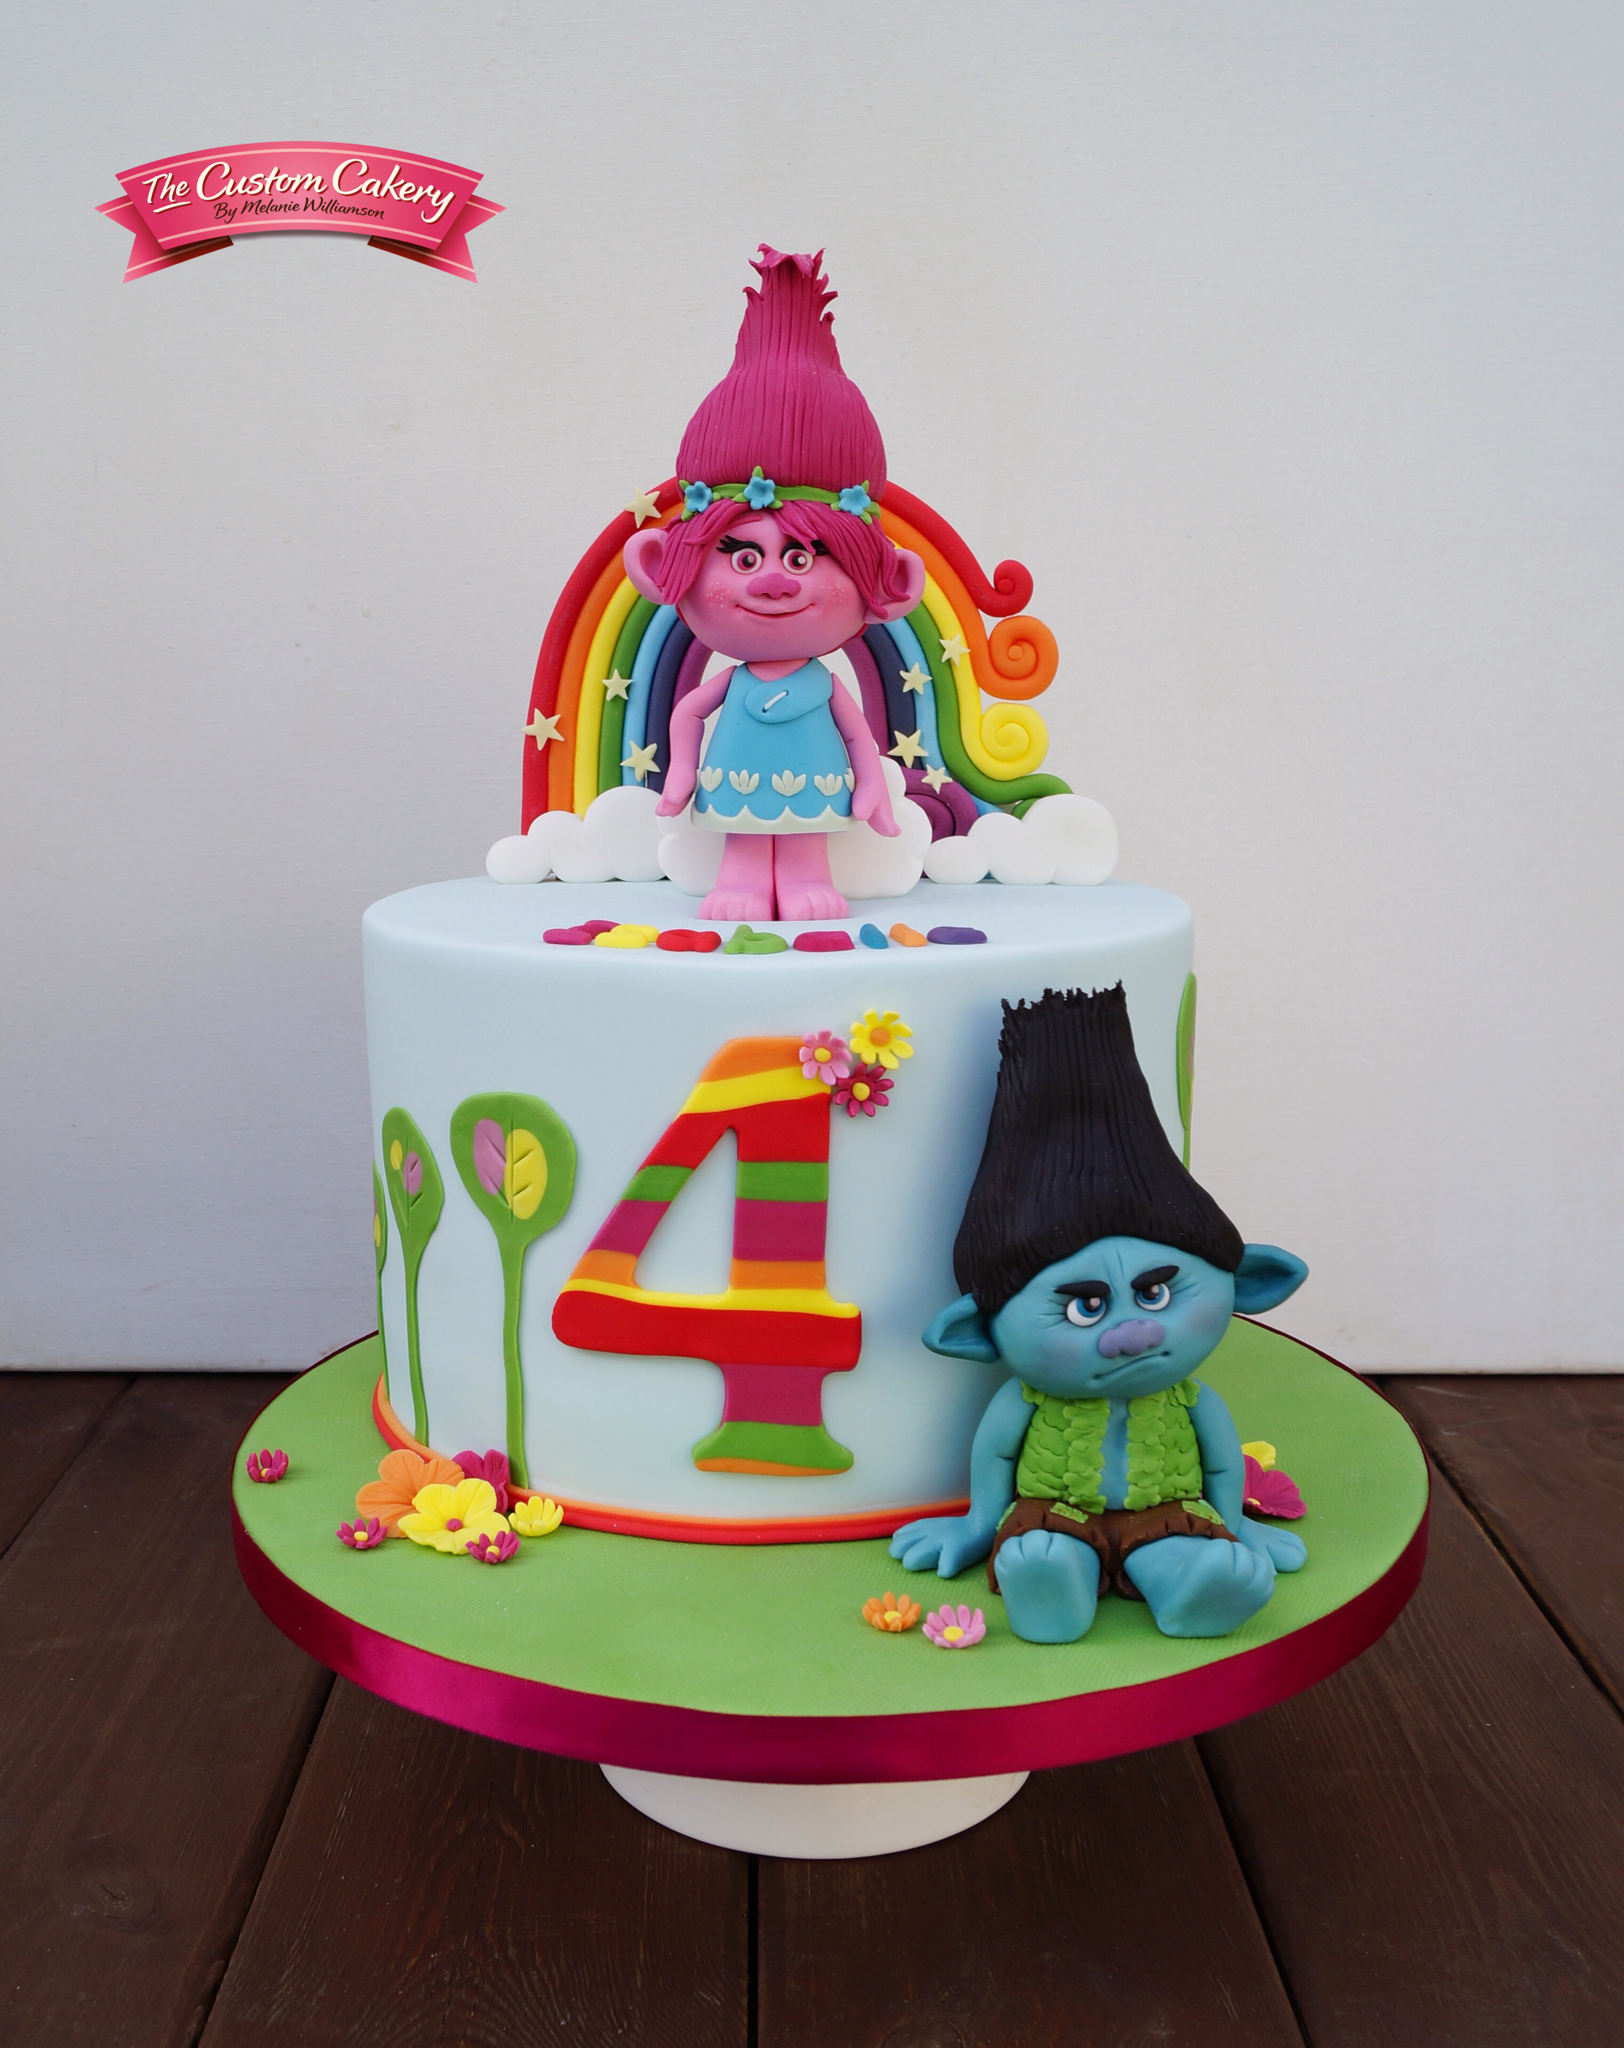 Cake Decoration Trolls : Trolls Cake with edible fondant models of Poppy and Branch ...